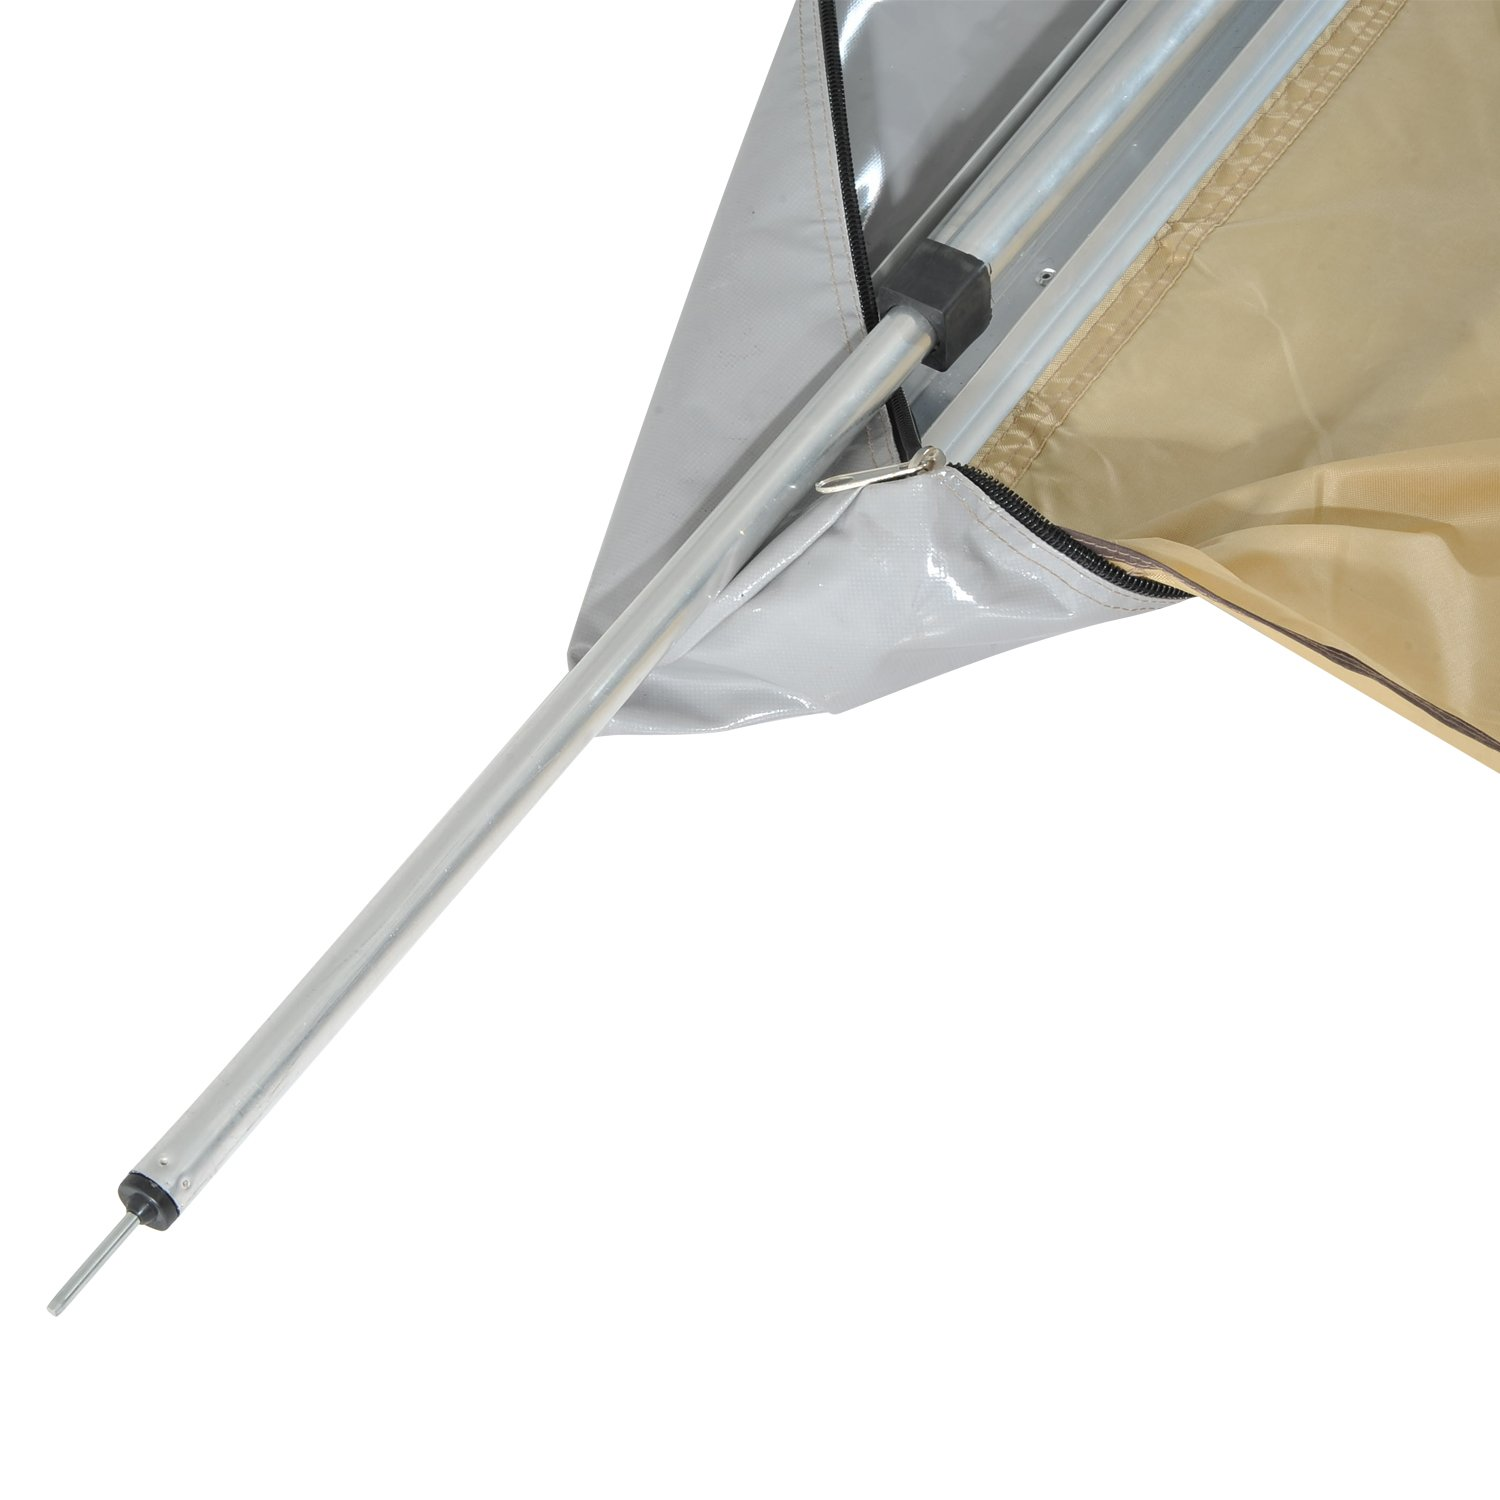 canopy awning drop shelter arm sunshade outdoor manual living outsunny retractable door window